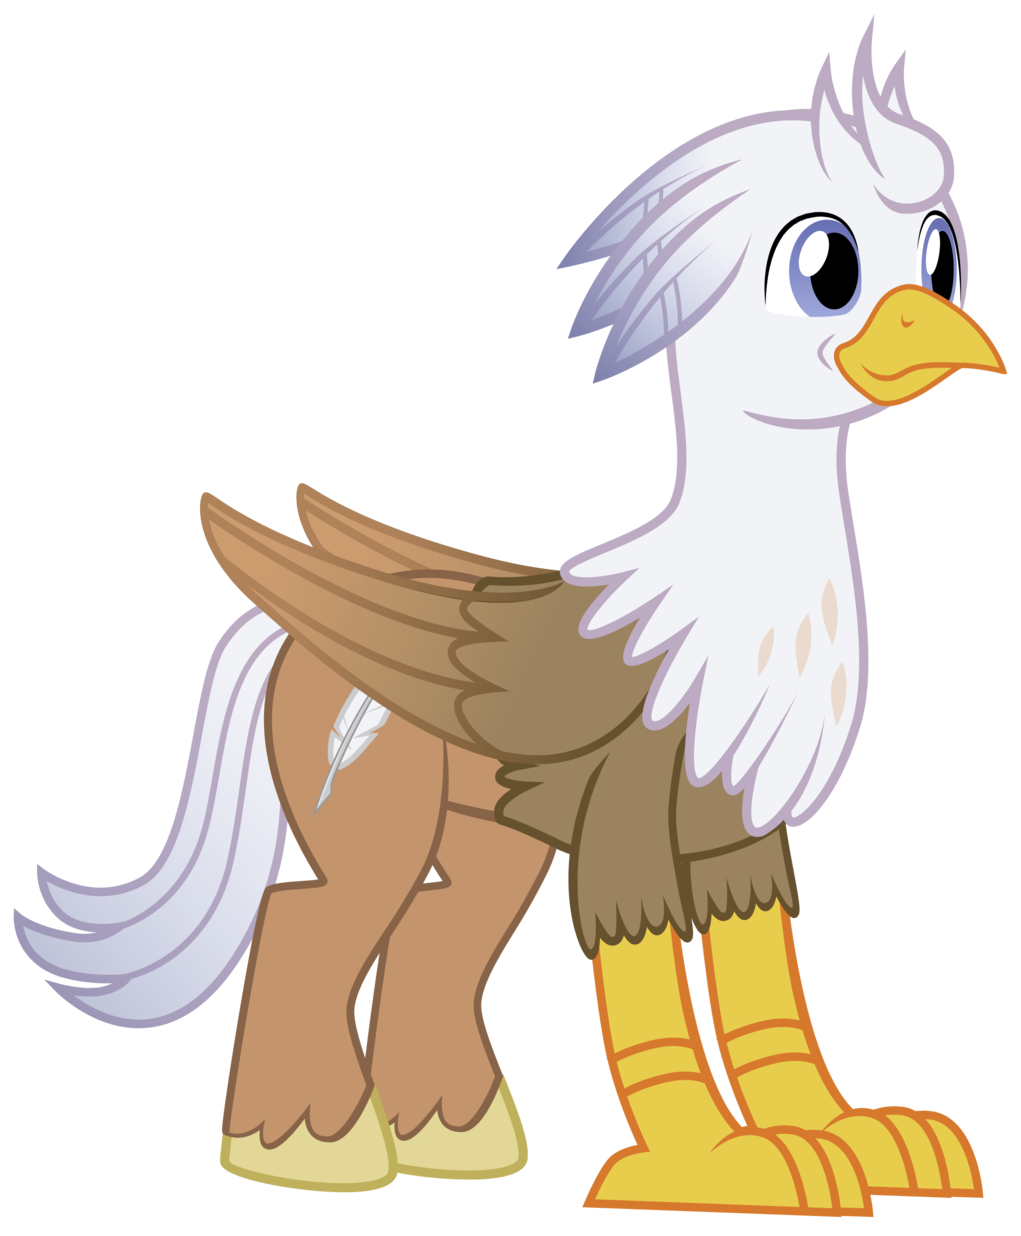 https://static.tvtropes.org/pmwiki/pub/images/mlp_silver_quill.png